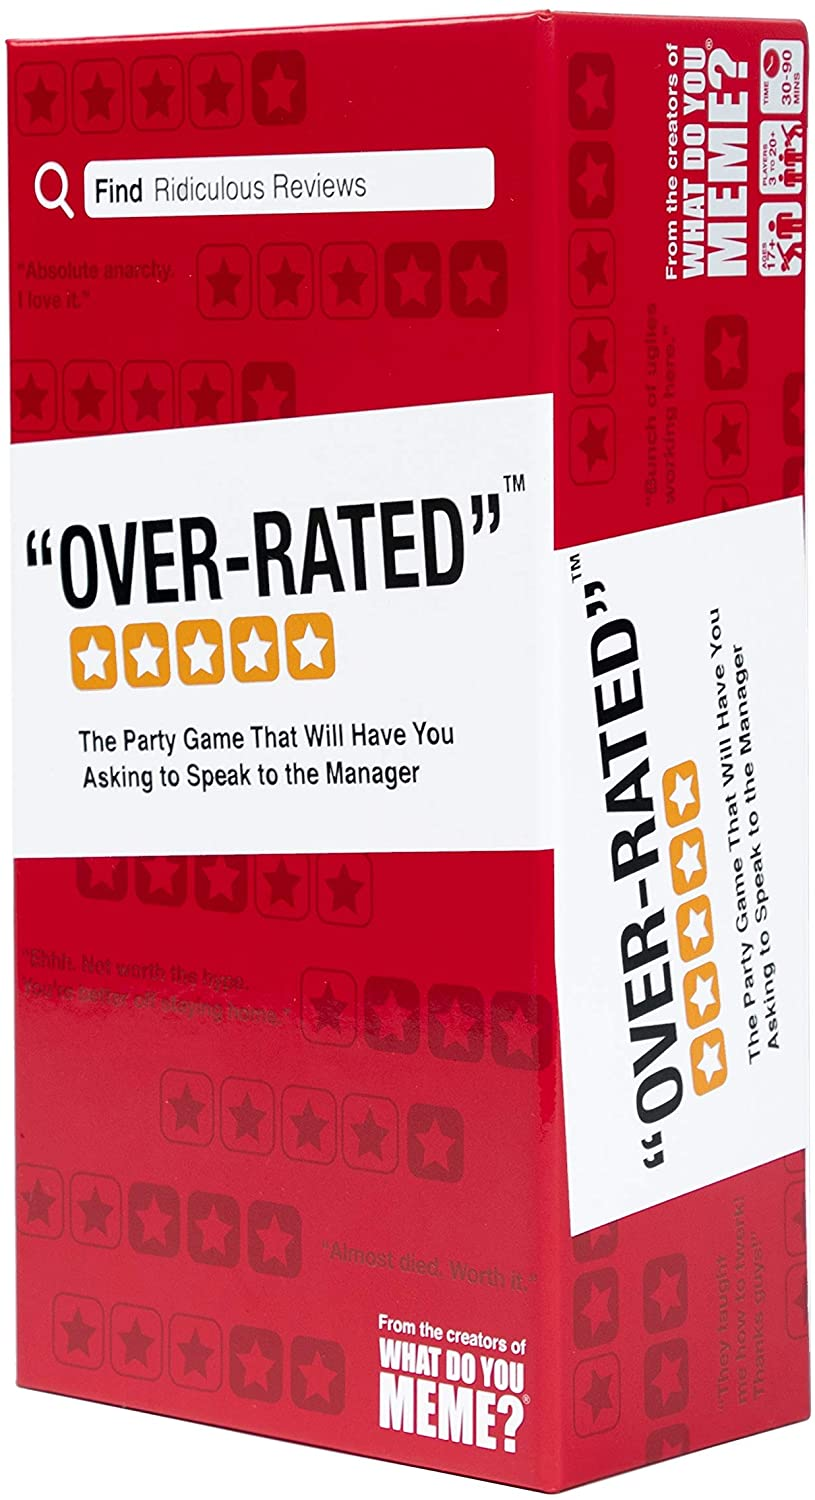 OVER-RATED